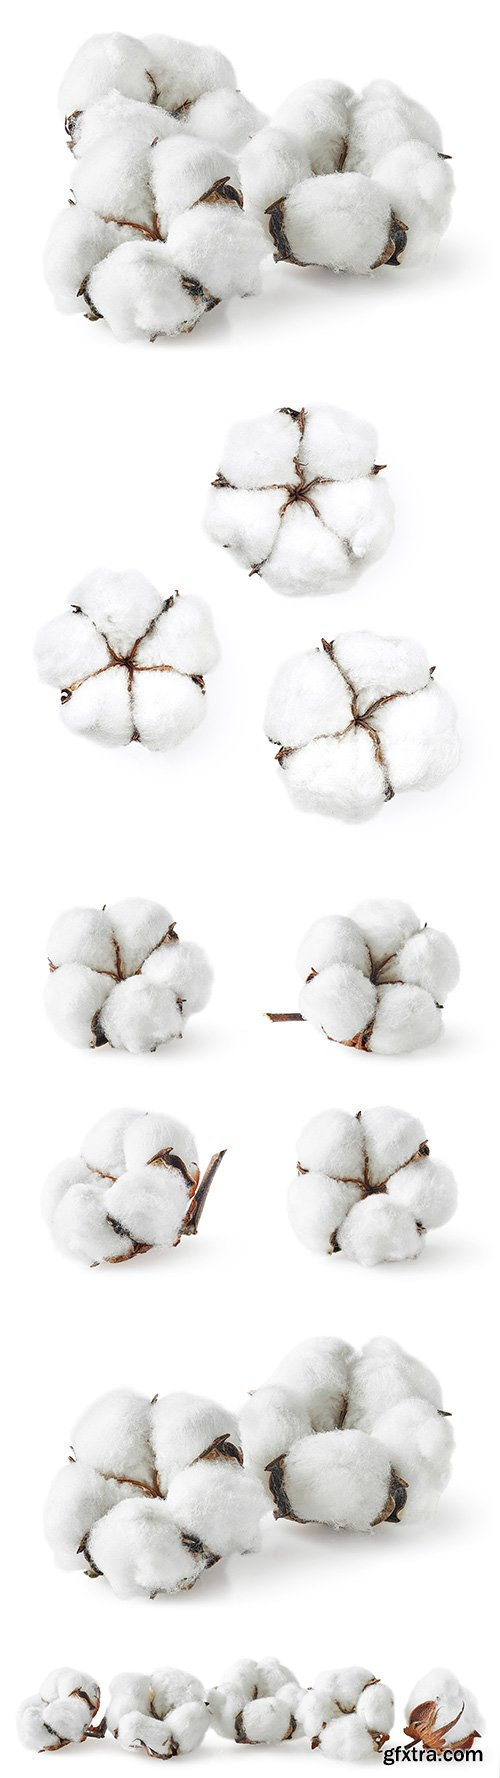 Cotton Isolated - 5xJPGs